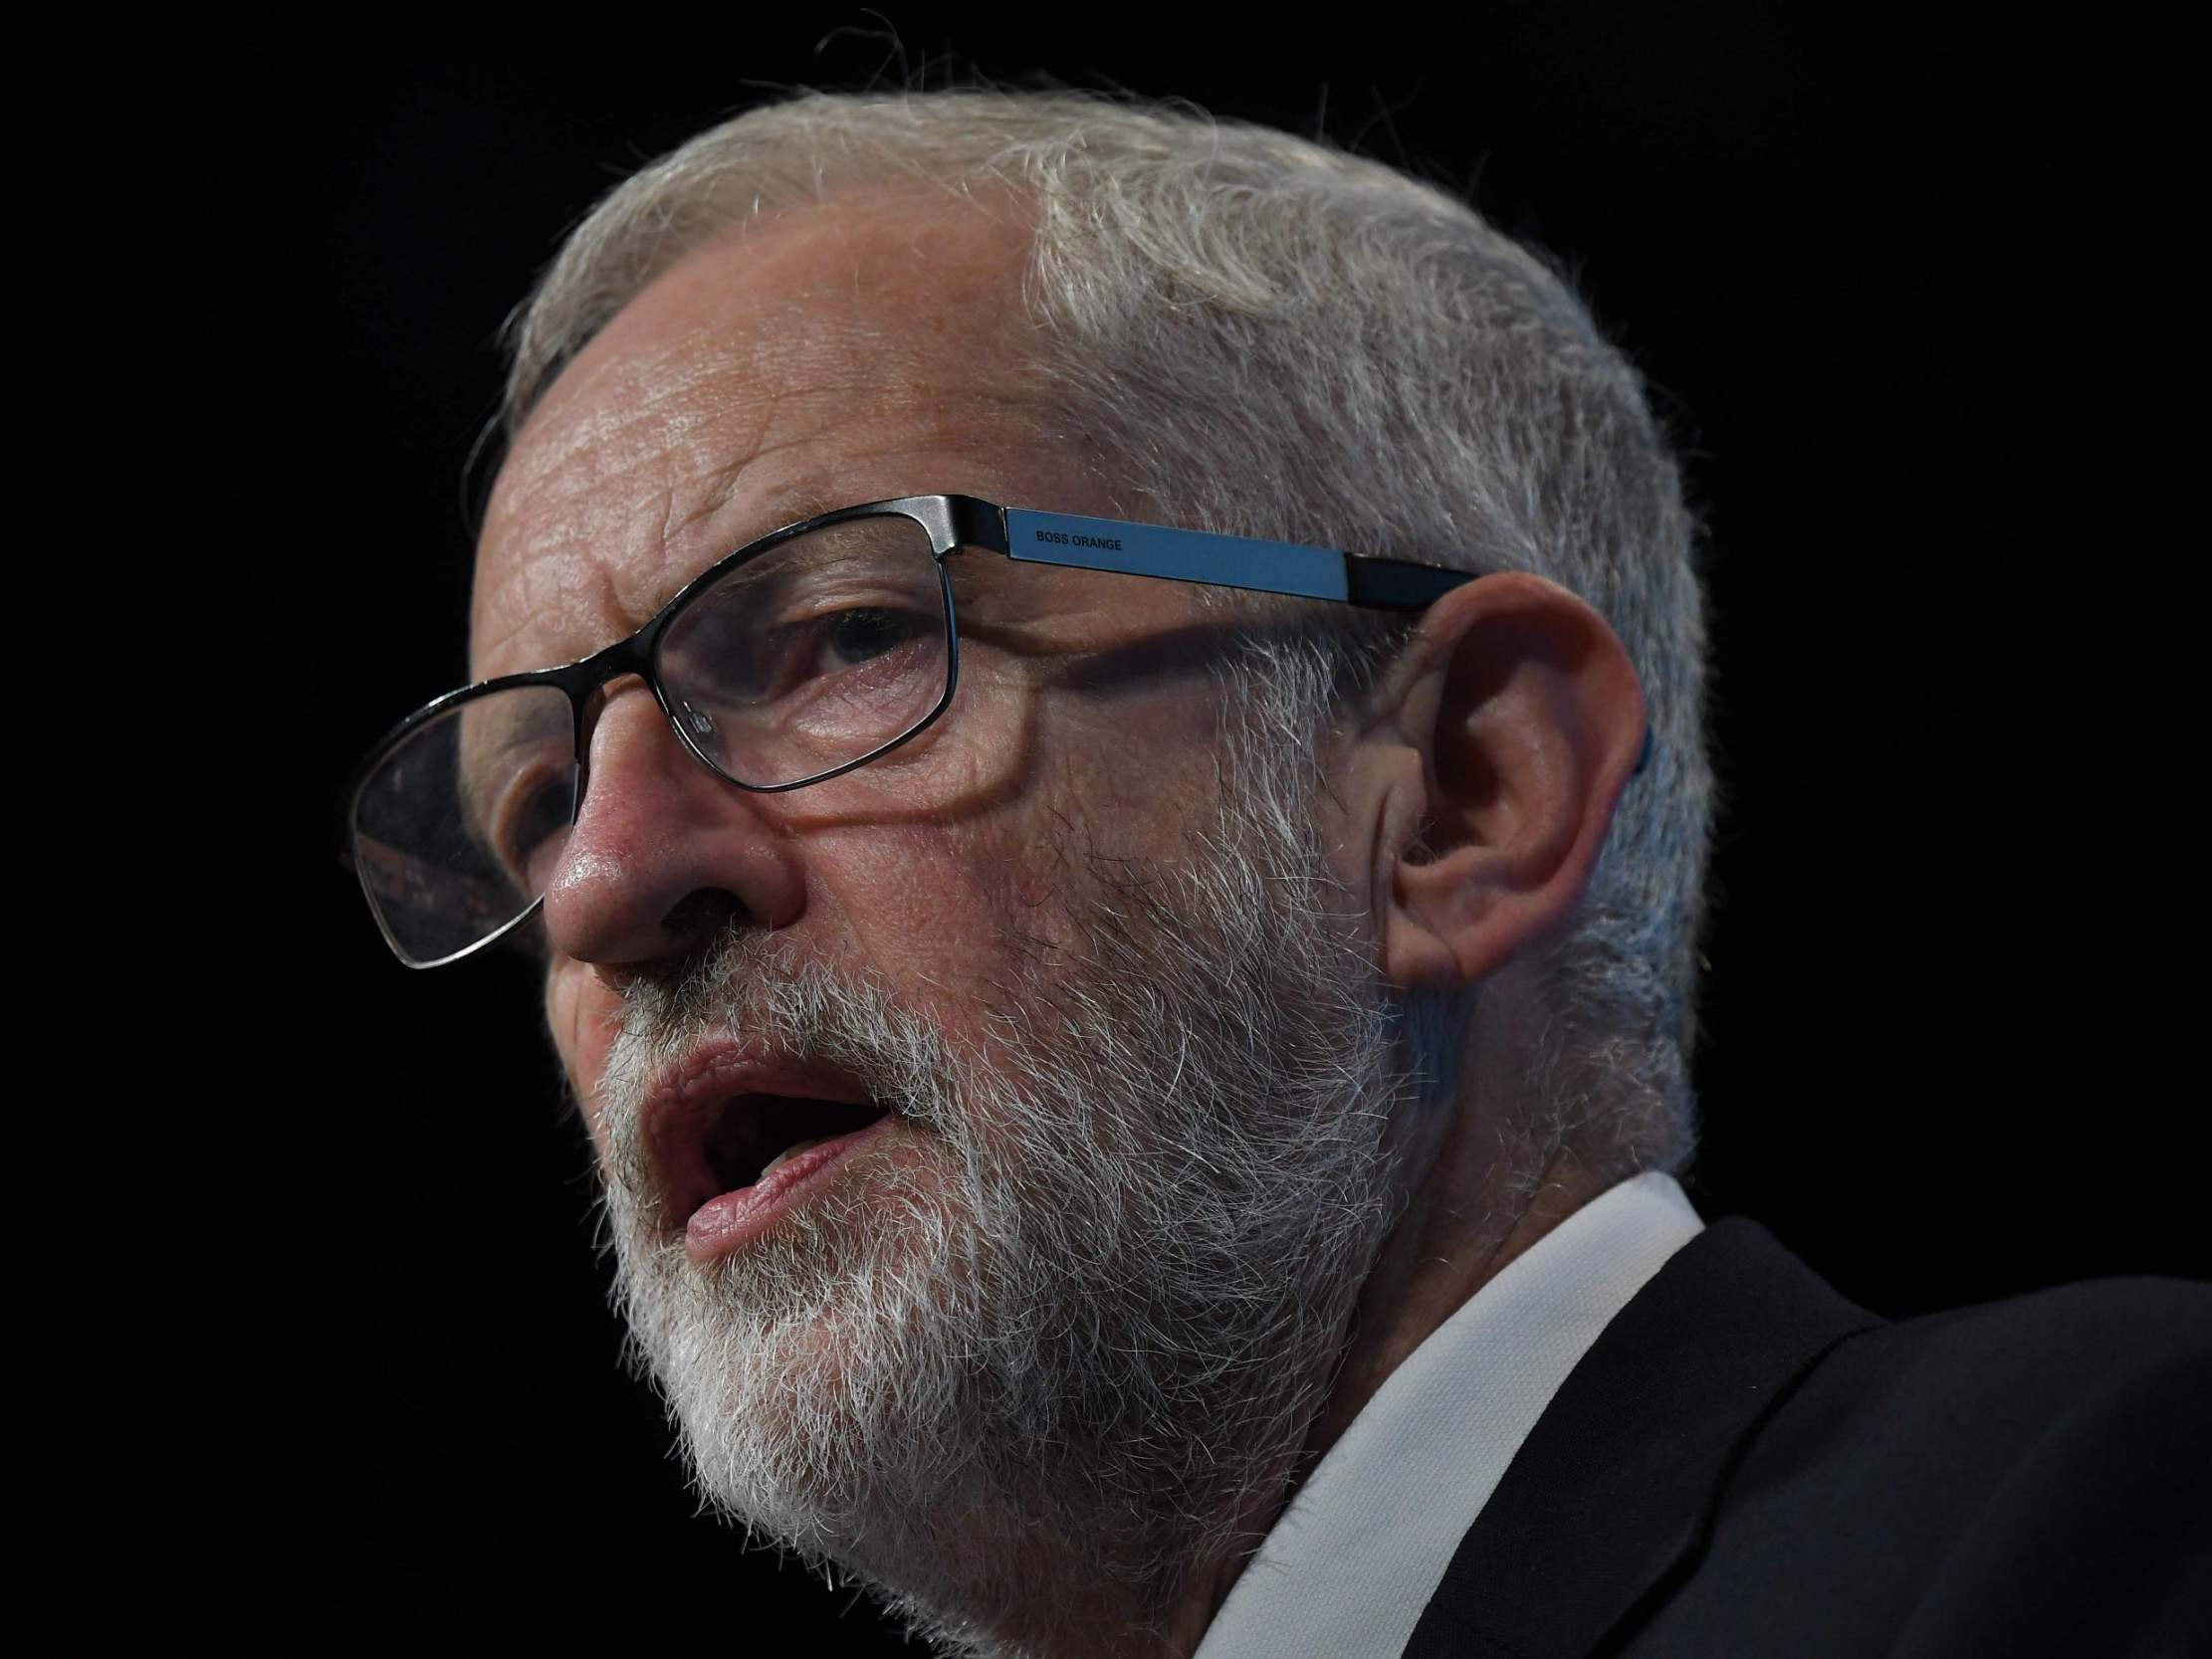 Jeremy Corbyn, stop obsessing over the protest politics of your youth – we live in entirely different times now